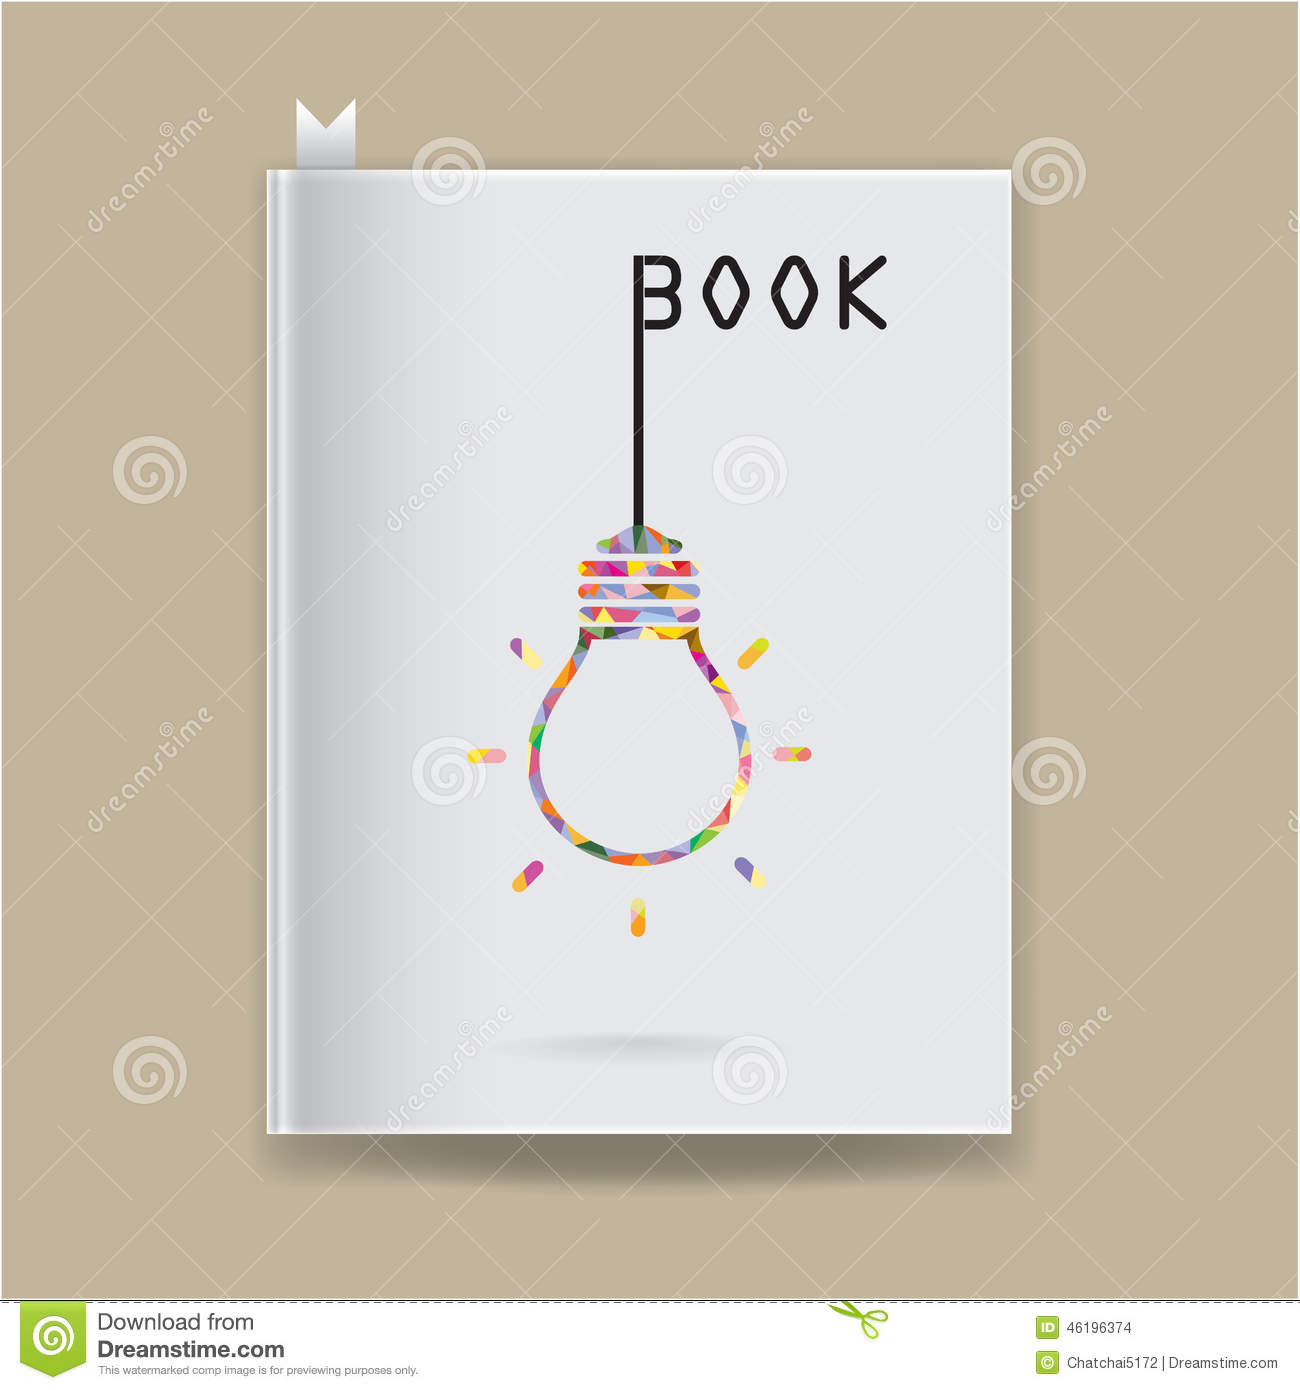 How To Make A Book Cover Using Illustrator : Concept of the idea on book royalty free stock image